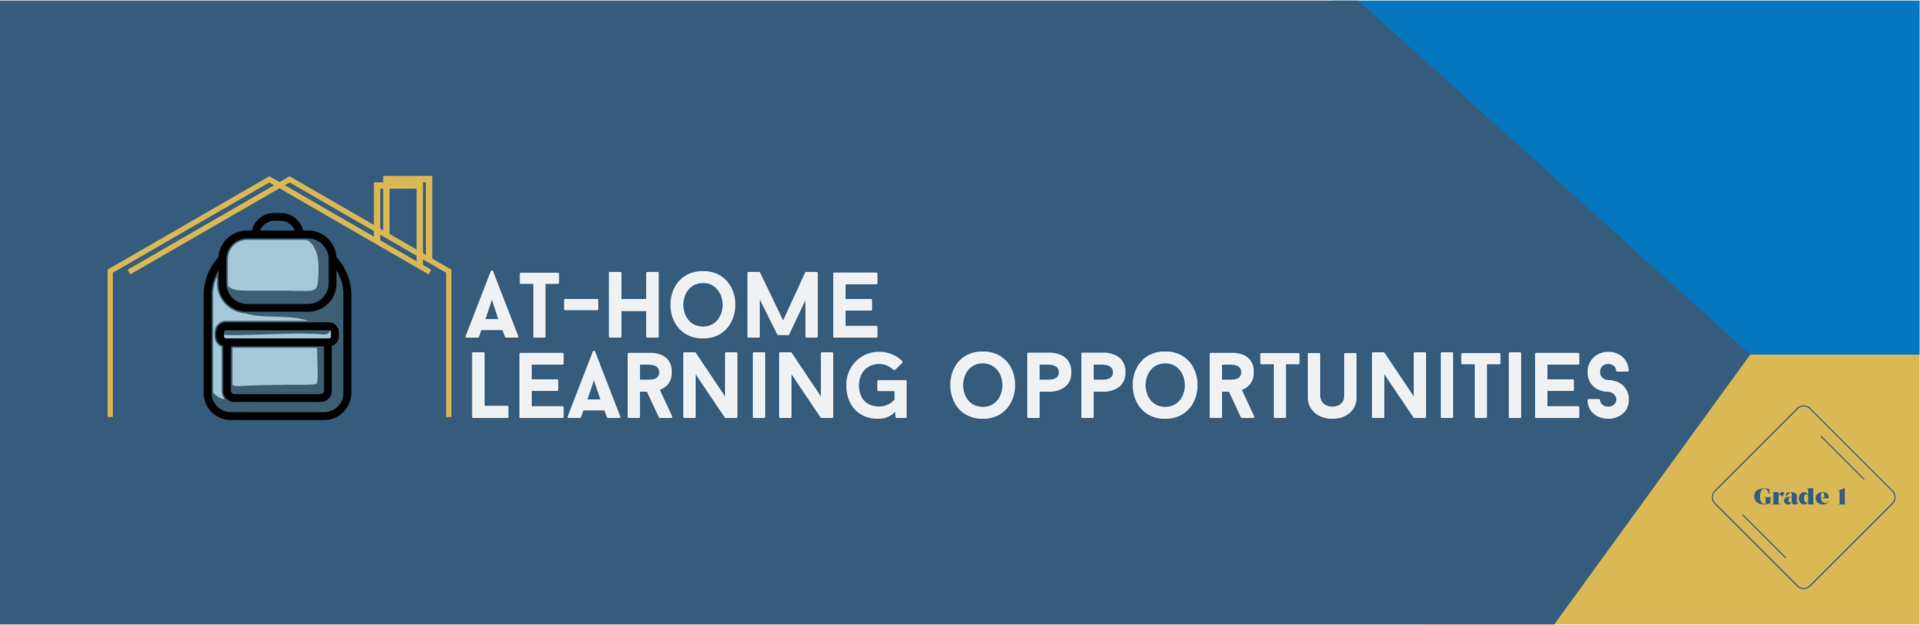 At-Home Learning Opportunities